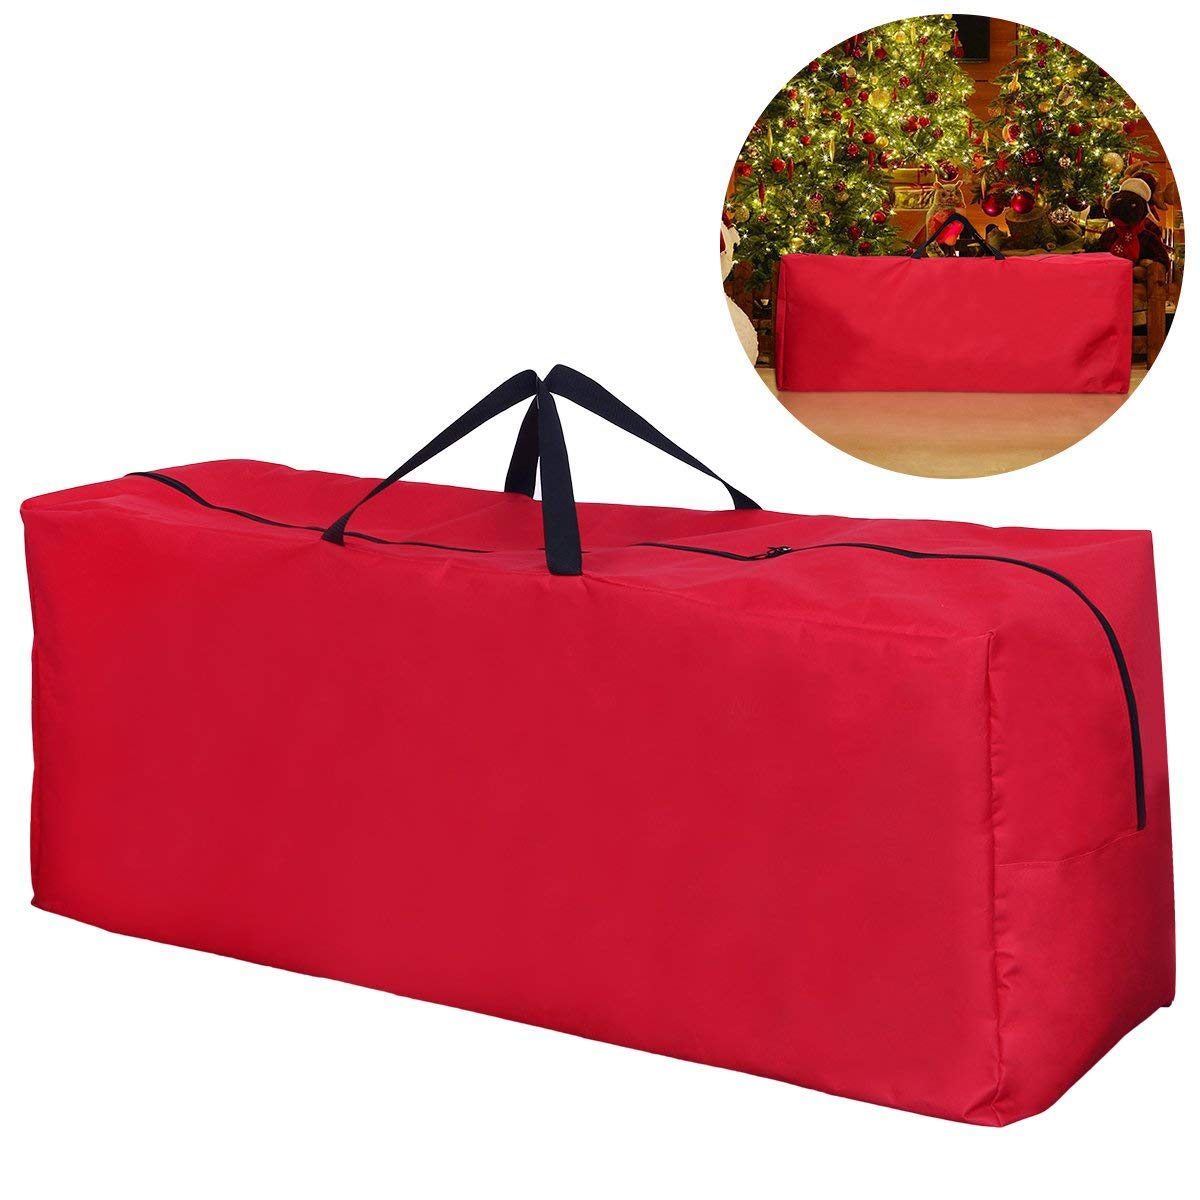 Premium 600D Oxford Christmas Tree Storage Bag - Artificial Up to 6'- 9' Christmas Tree Organizer for Un-Assembled Trees, with Sleek Zipper - Accommodates Holiday Inflatables   Medium / Large